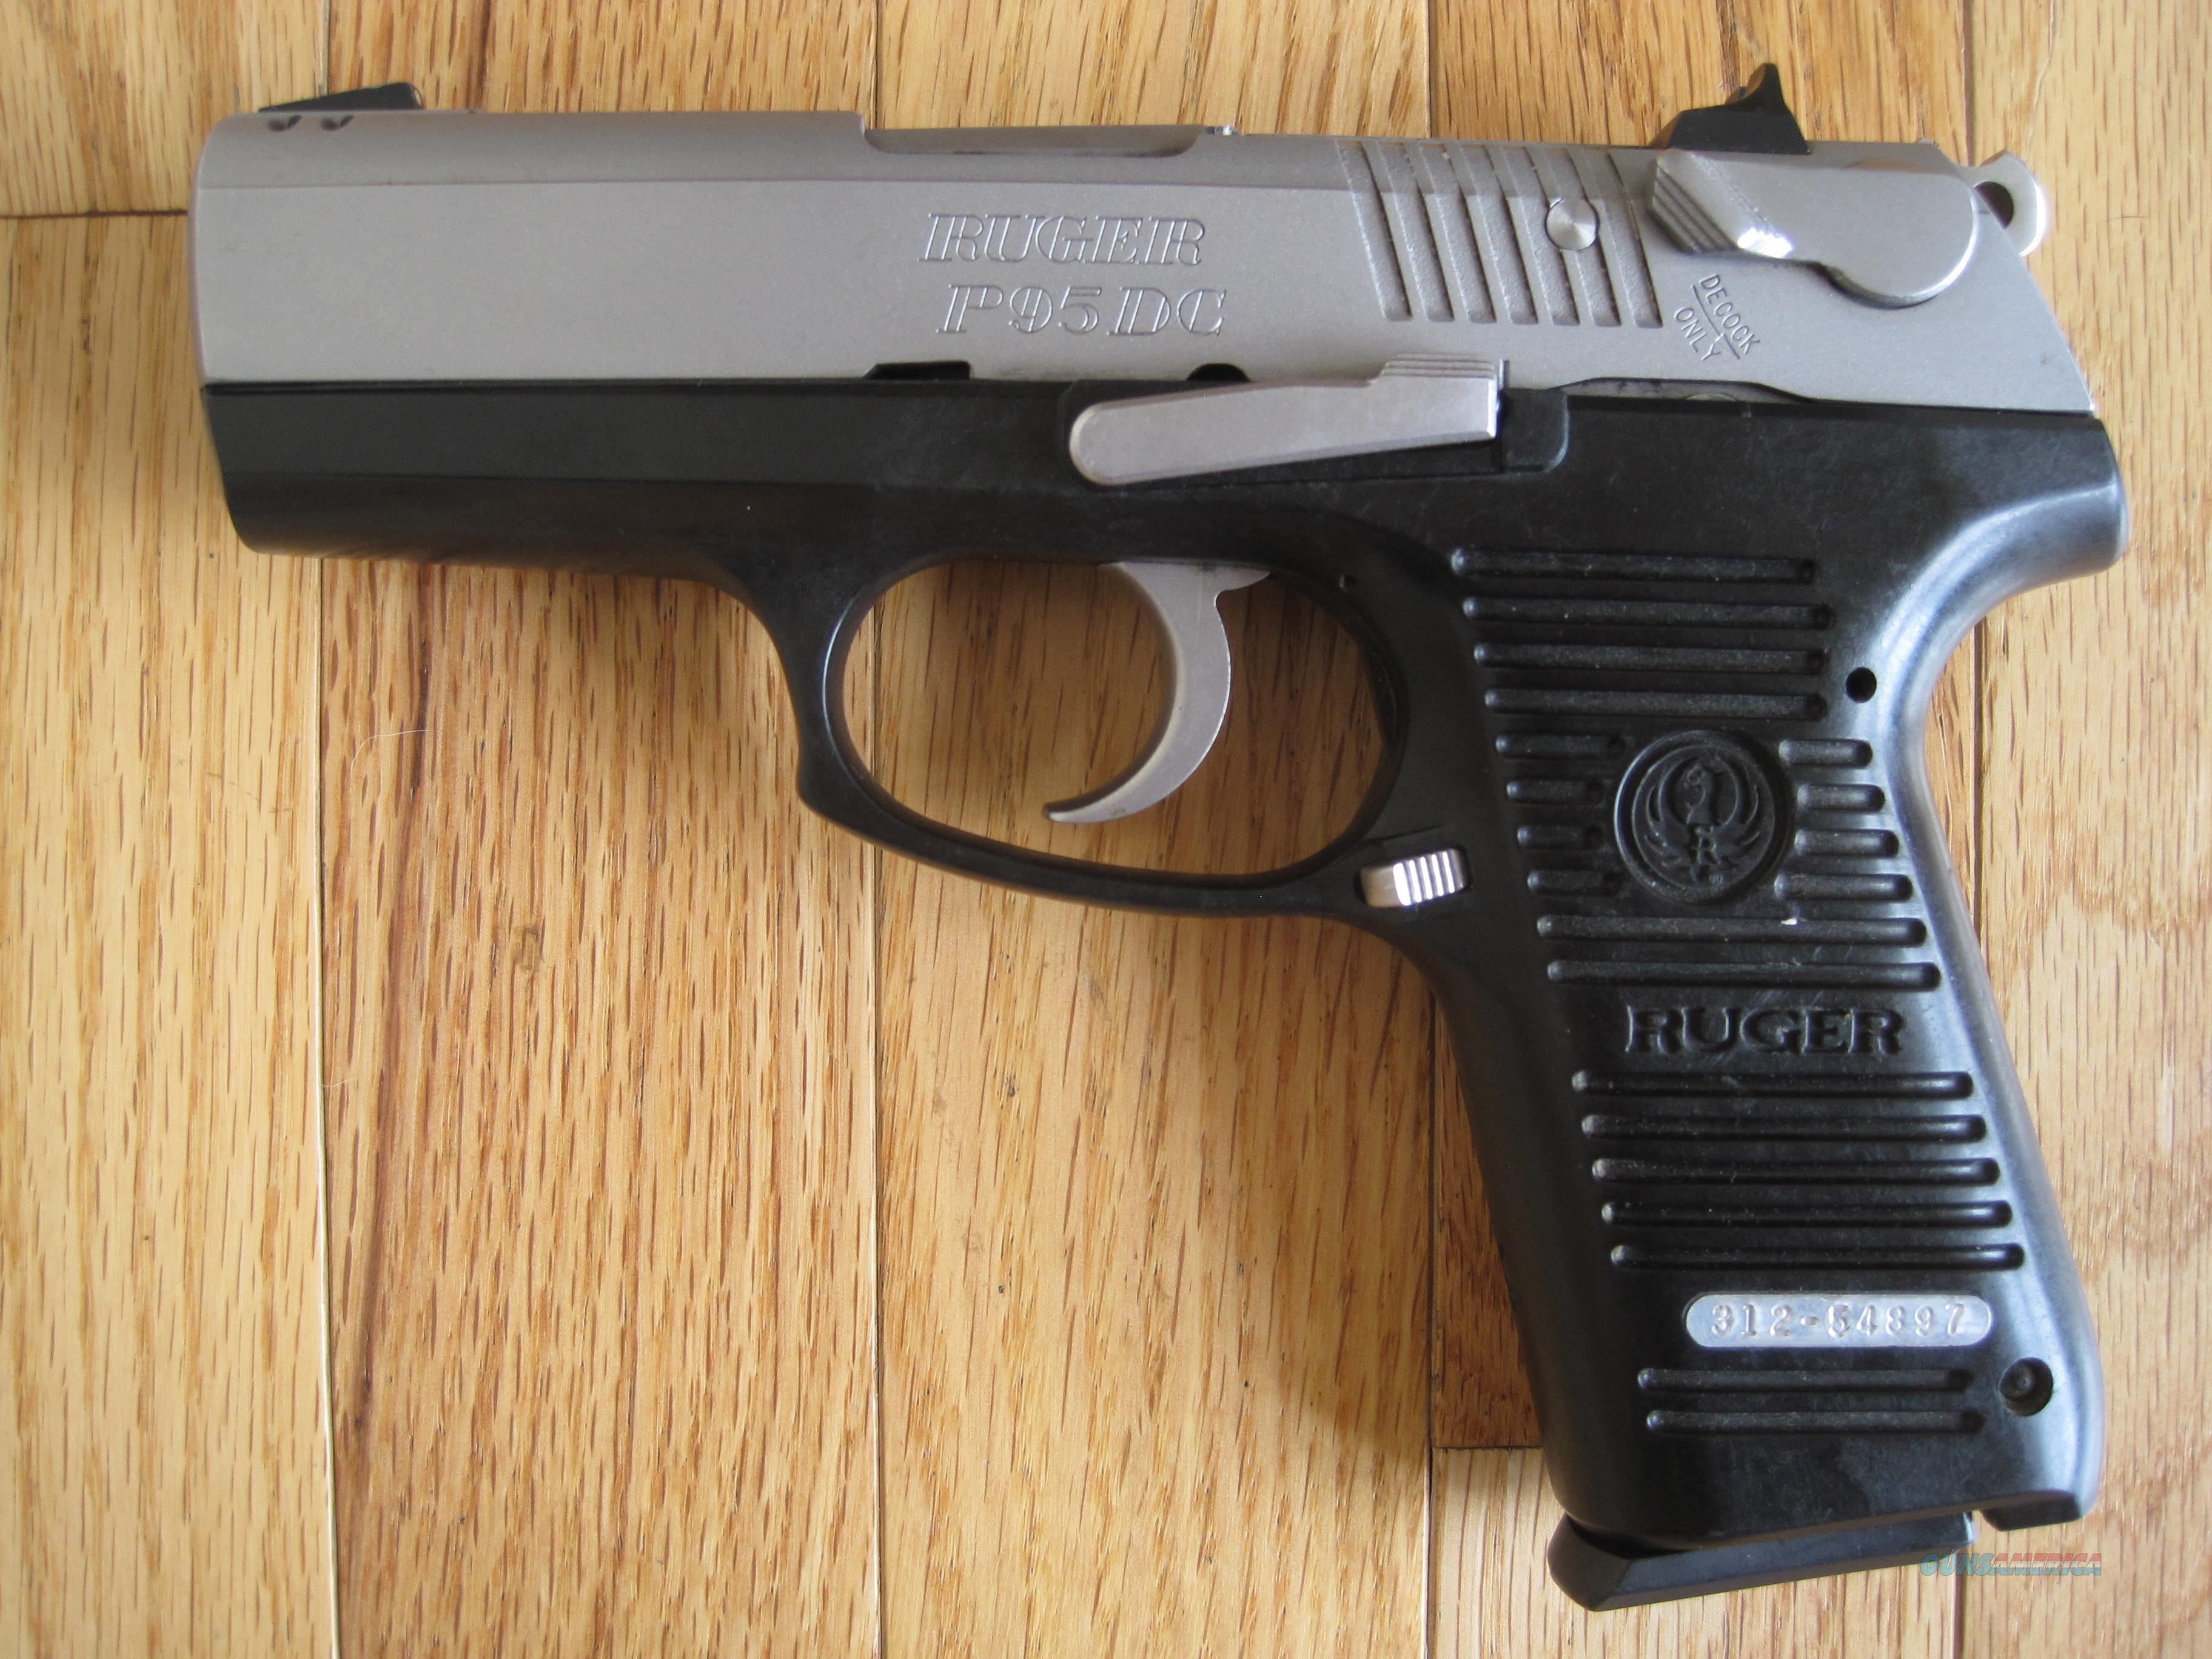 Ruger P95 Dc Stainless Steel 9mm For Sale